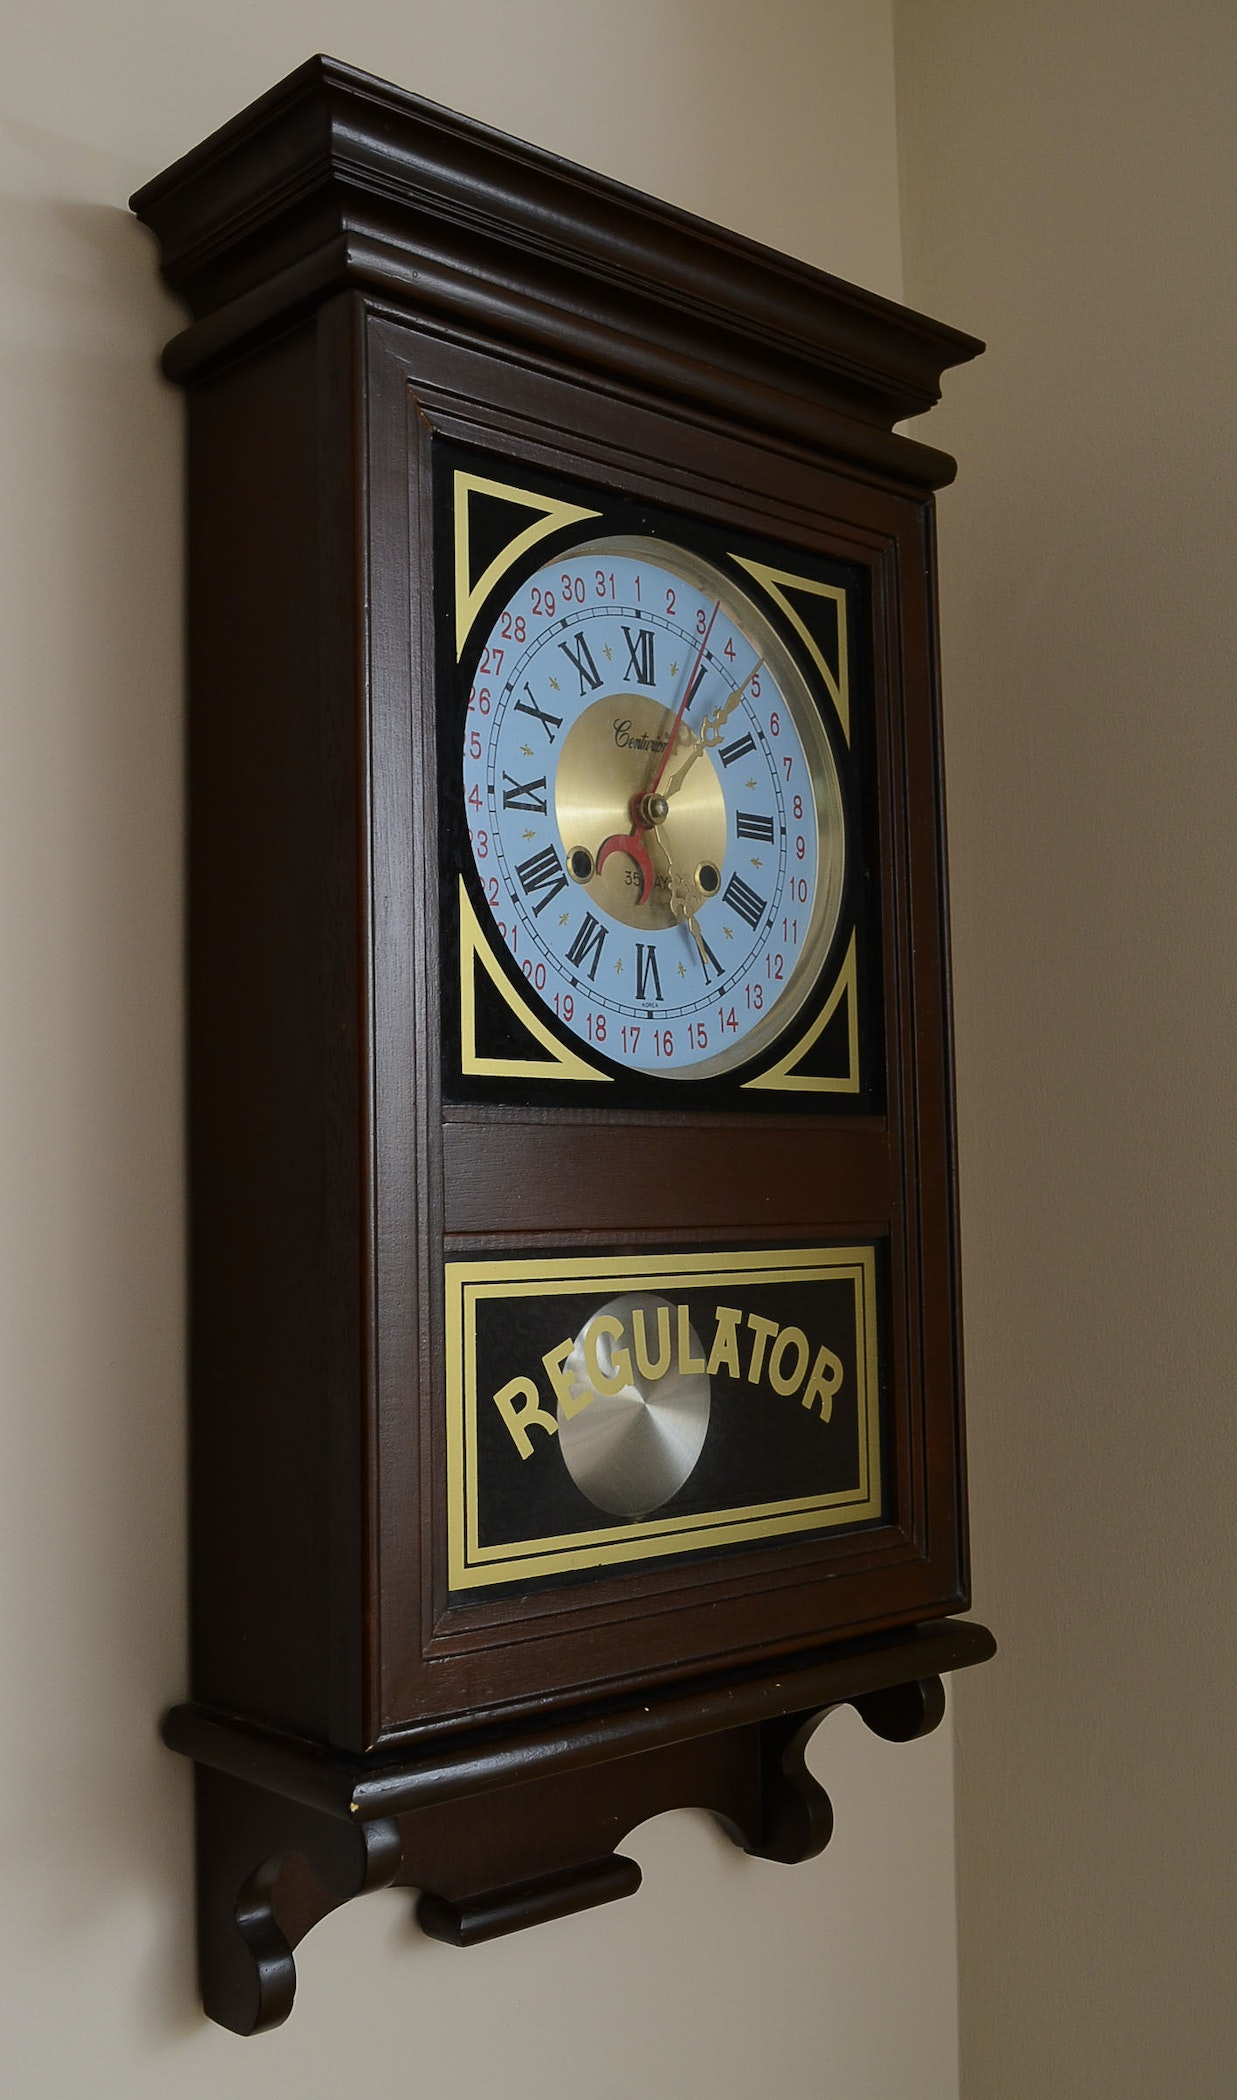 Centurion 35 Day Quot Regulator Quot Wall Clock Ebth